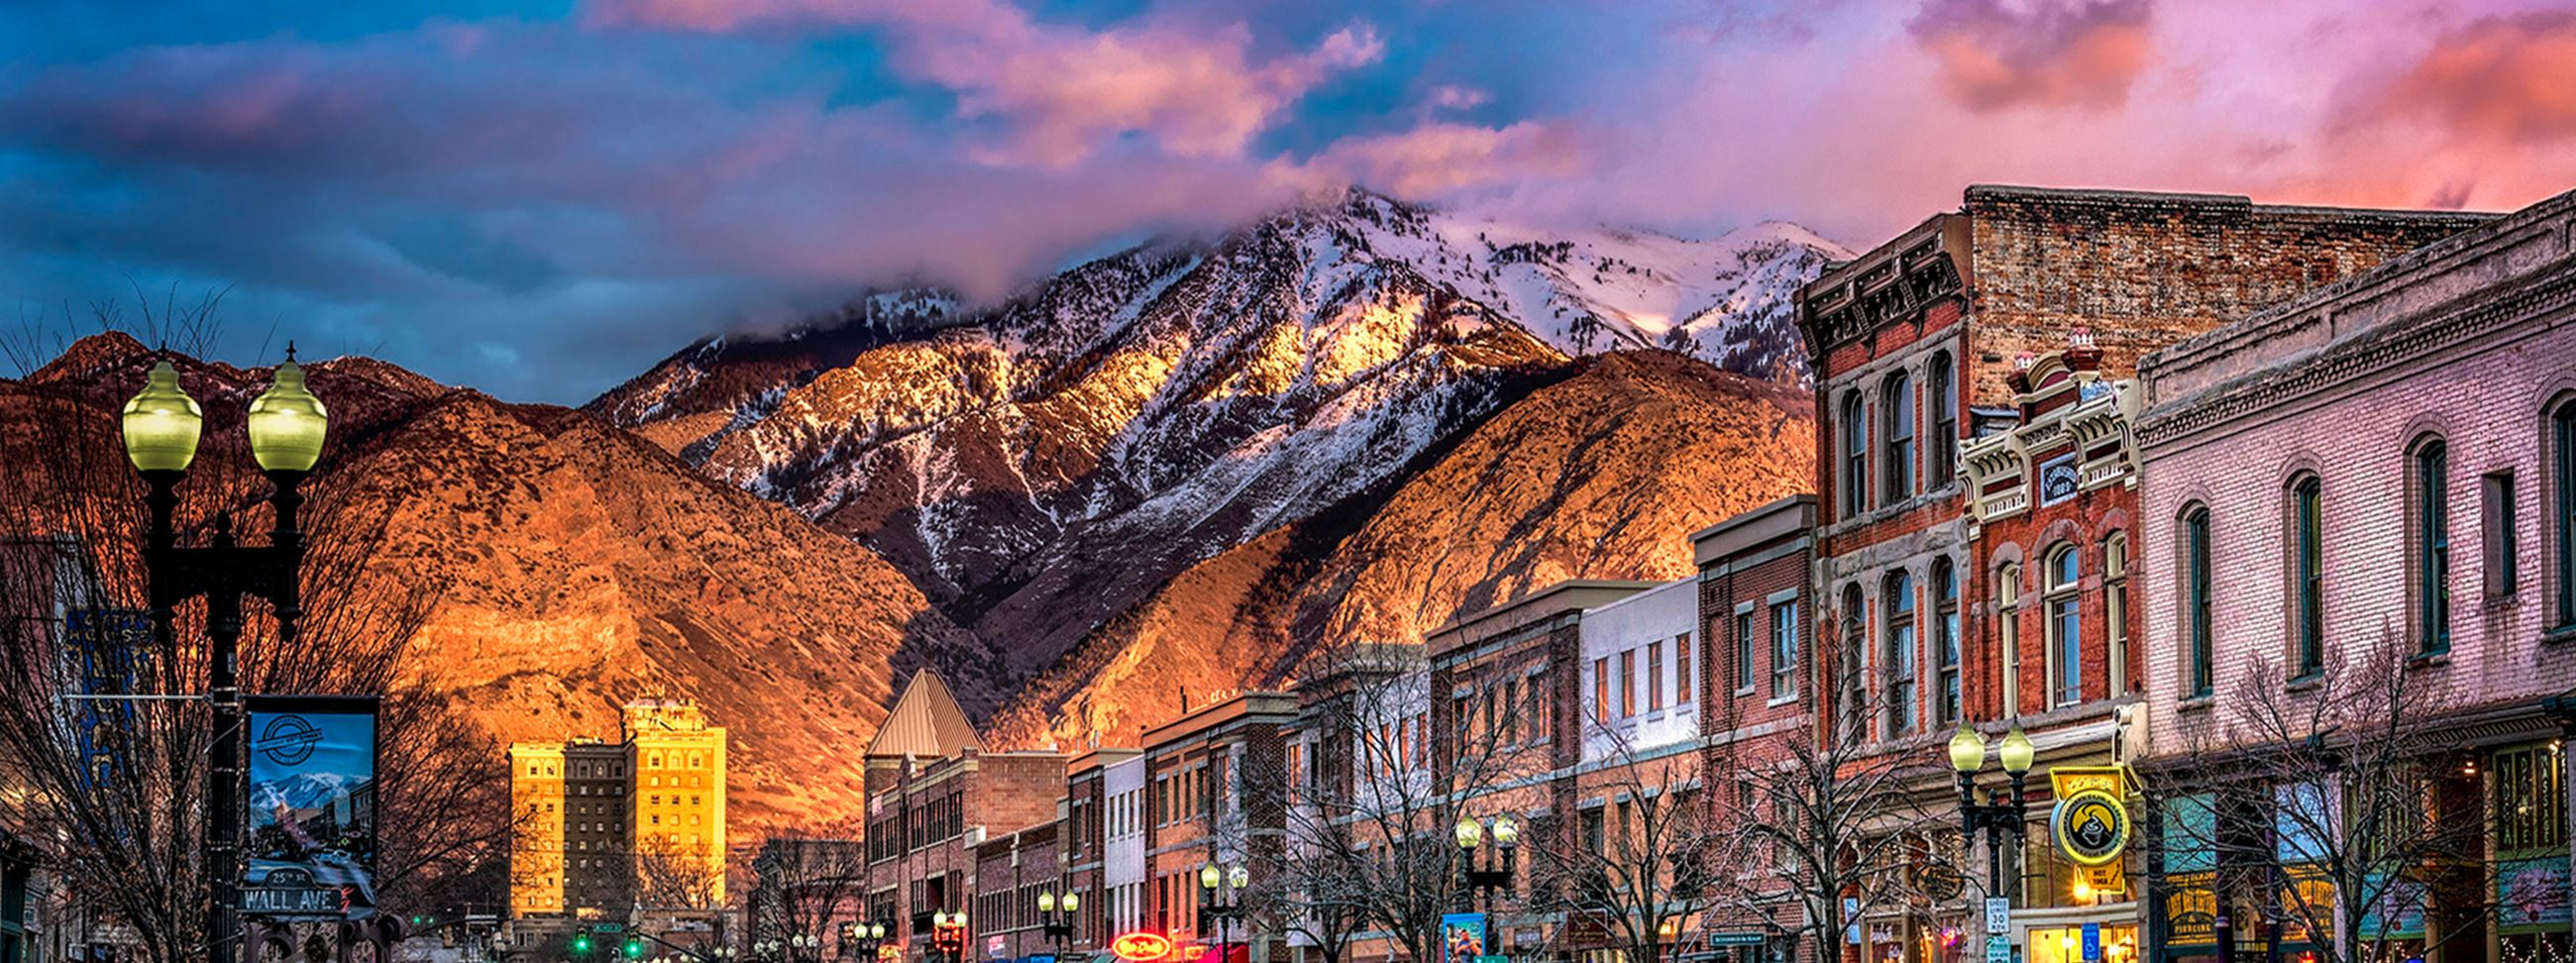 Historic 25th Street with mountains